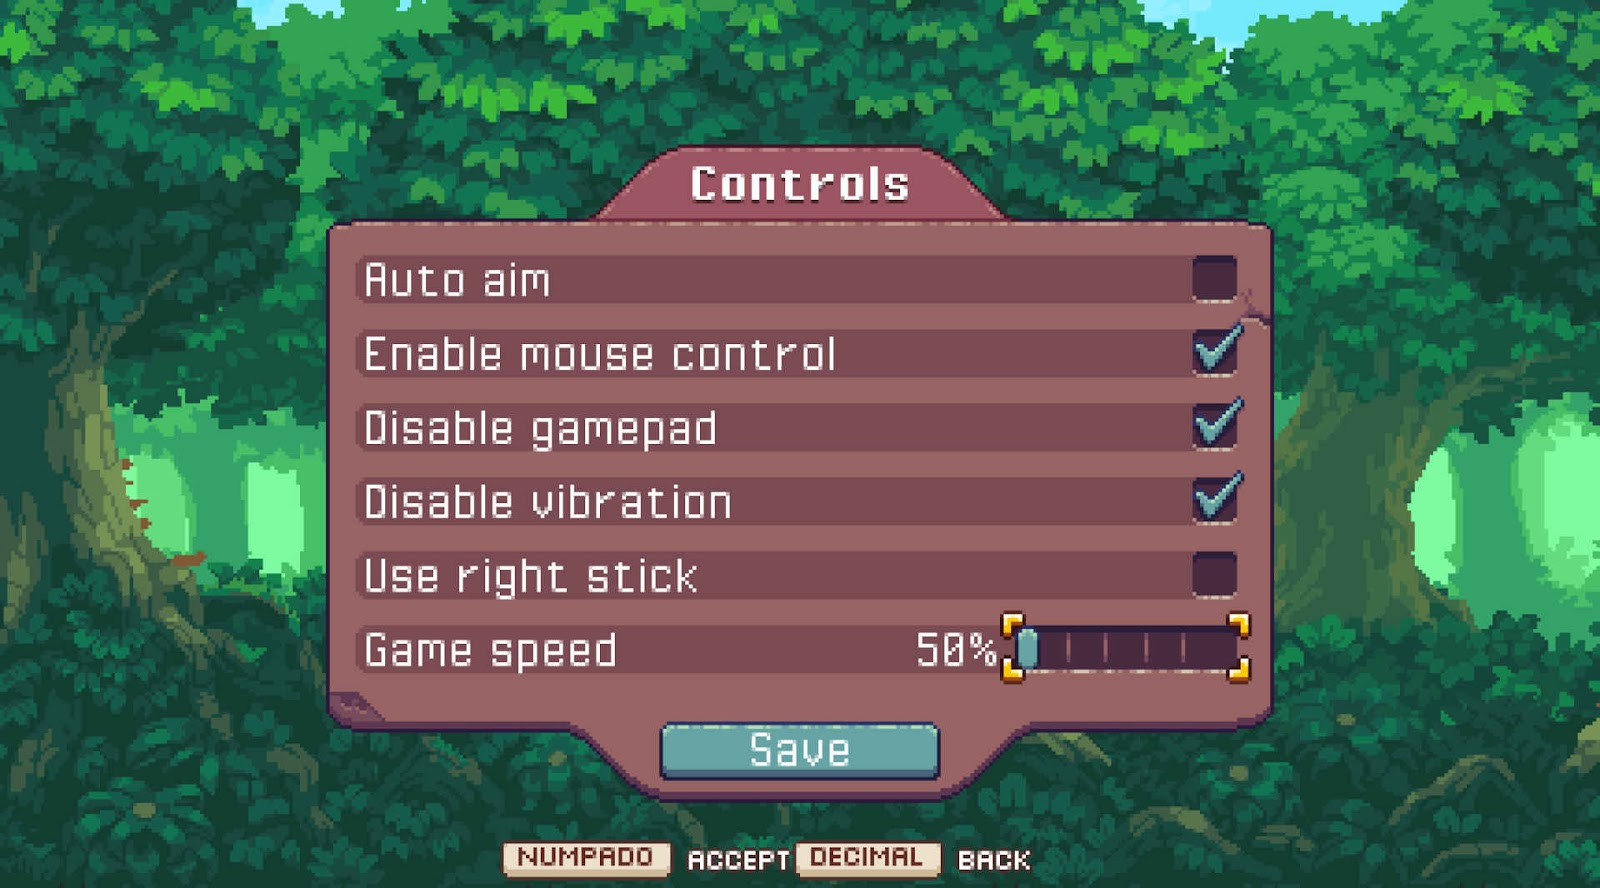 Auto aim, enable mouse control, disable gamepad, disable vibration, use right stick and game speed control.